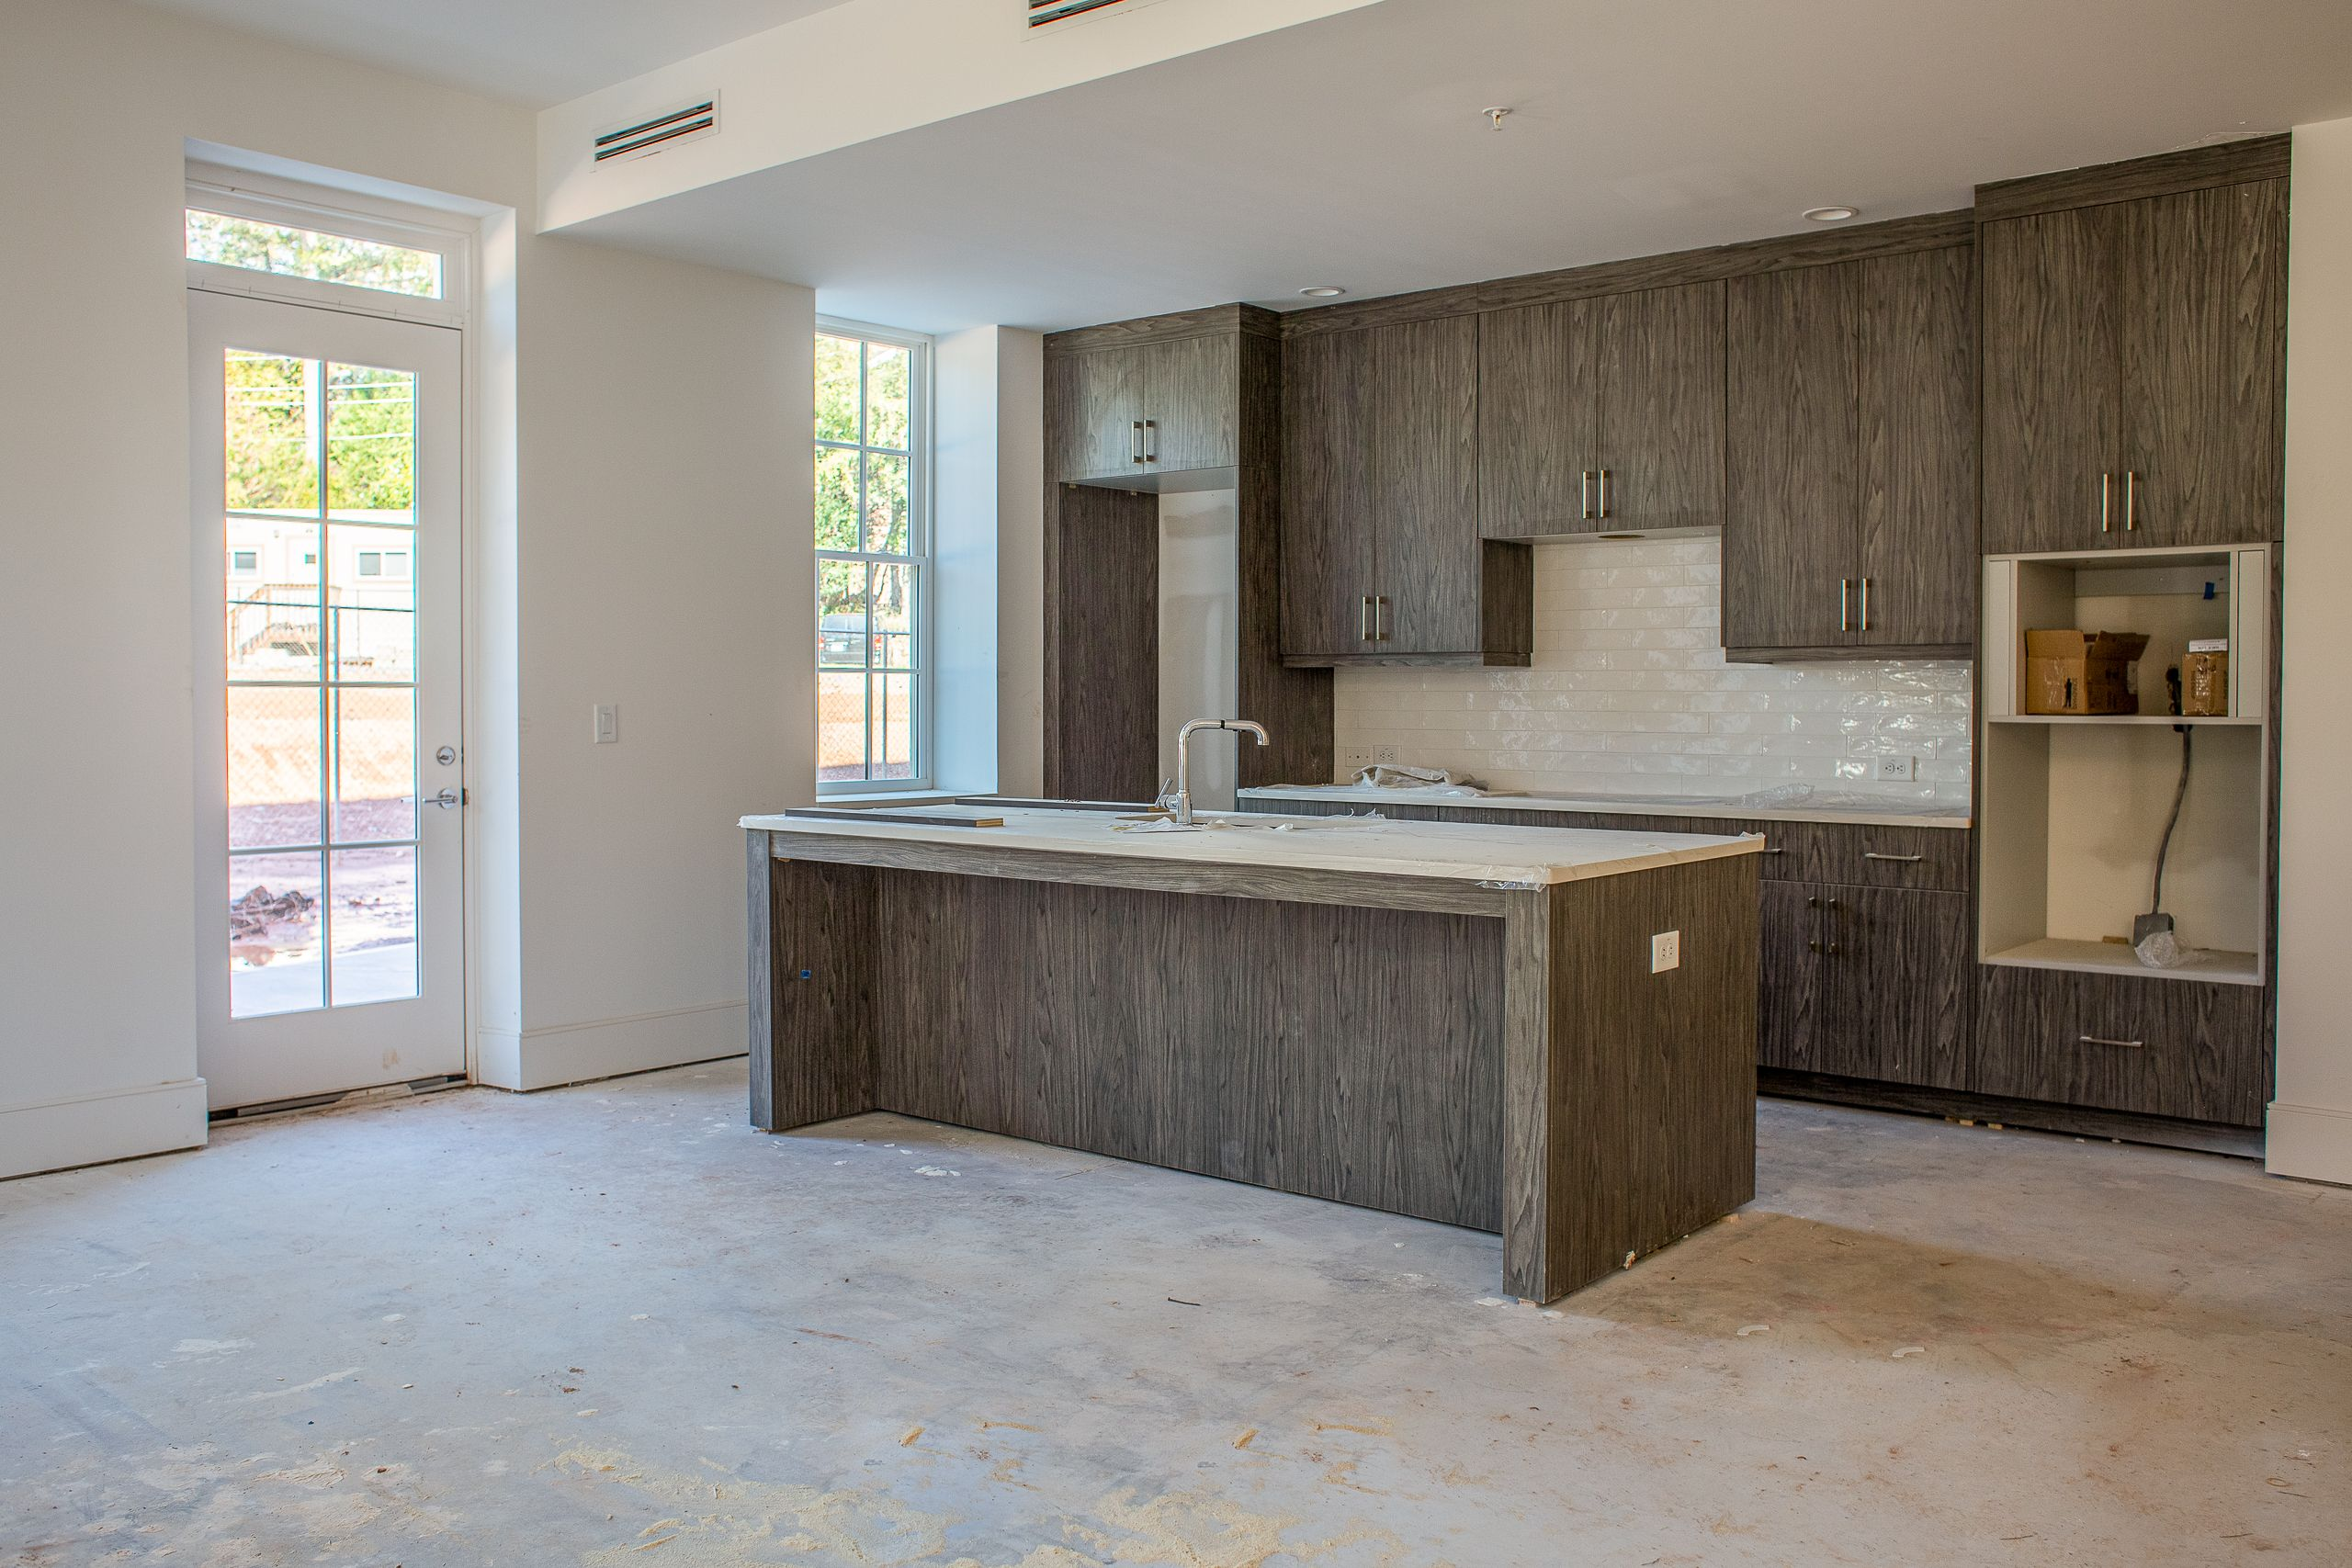 Kitchen featured in the Olmsted Condo By Minerva Homes in Atlanta, GA